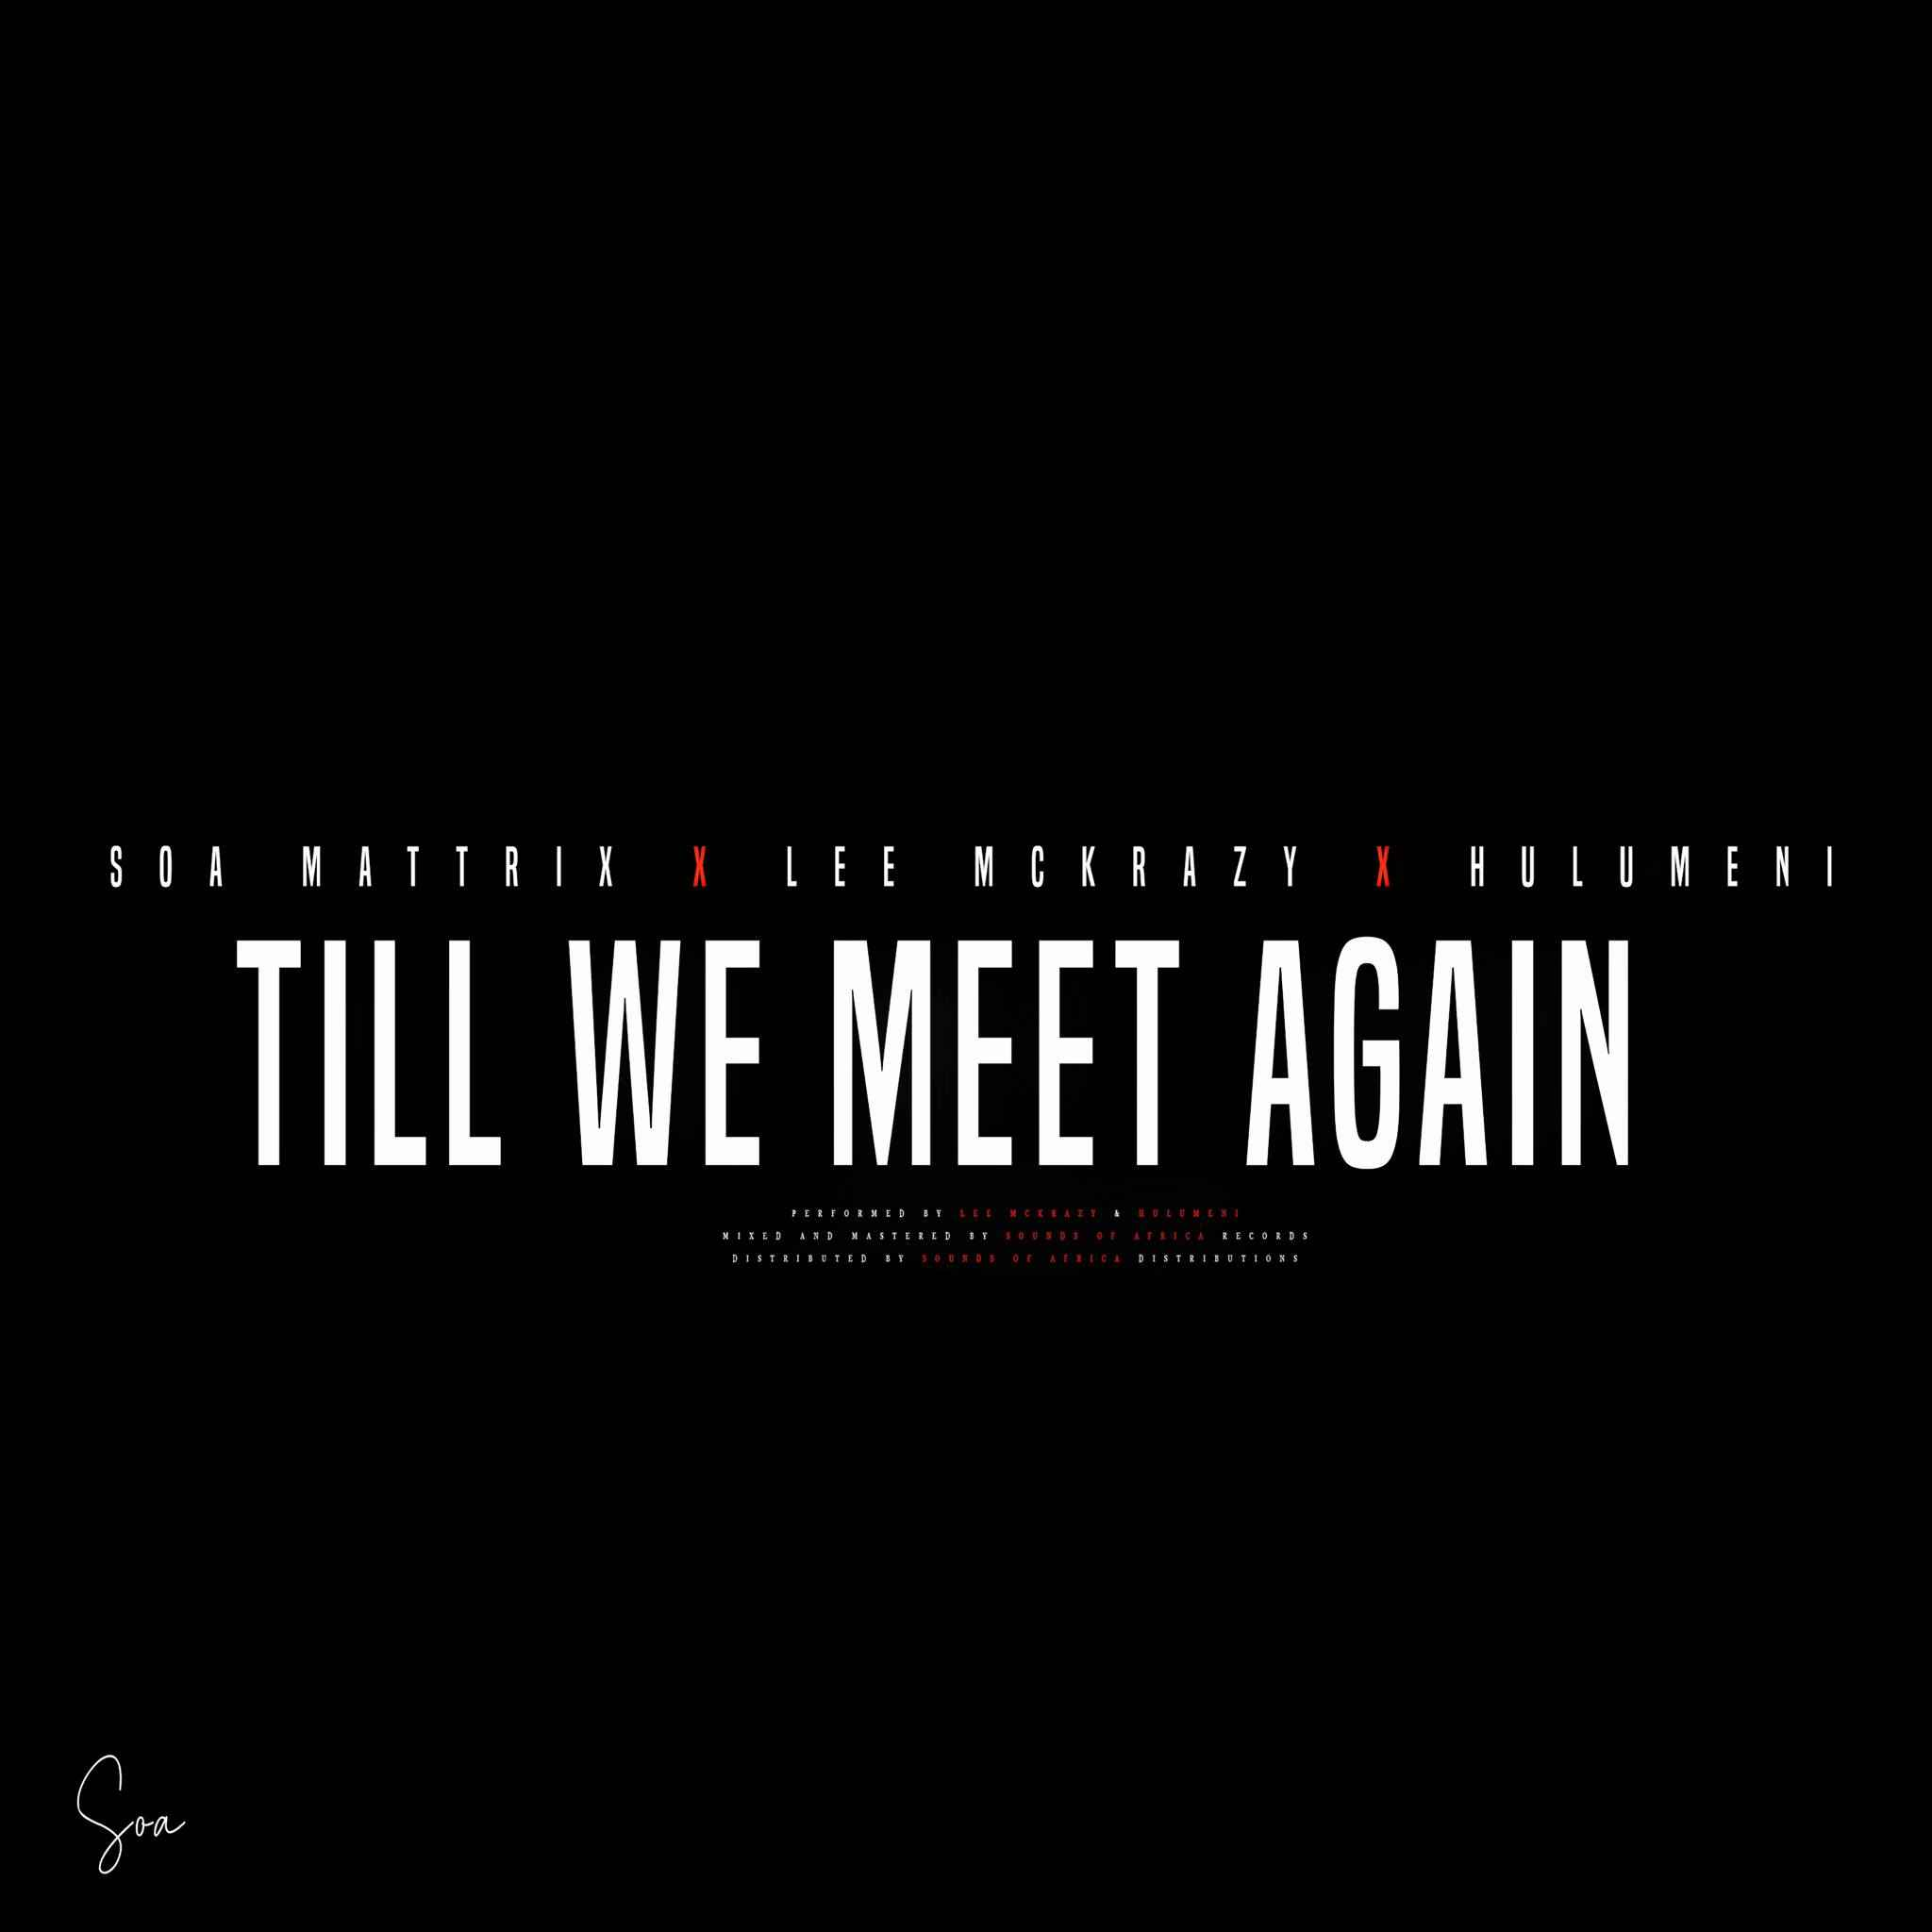 Soa Mattrix, Lee McKrazy & Hulumeni Till we meet again (Papers 707 Tribute Track)